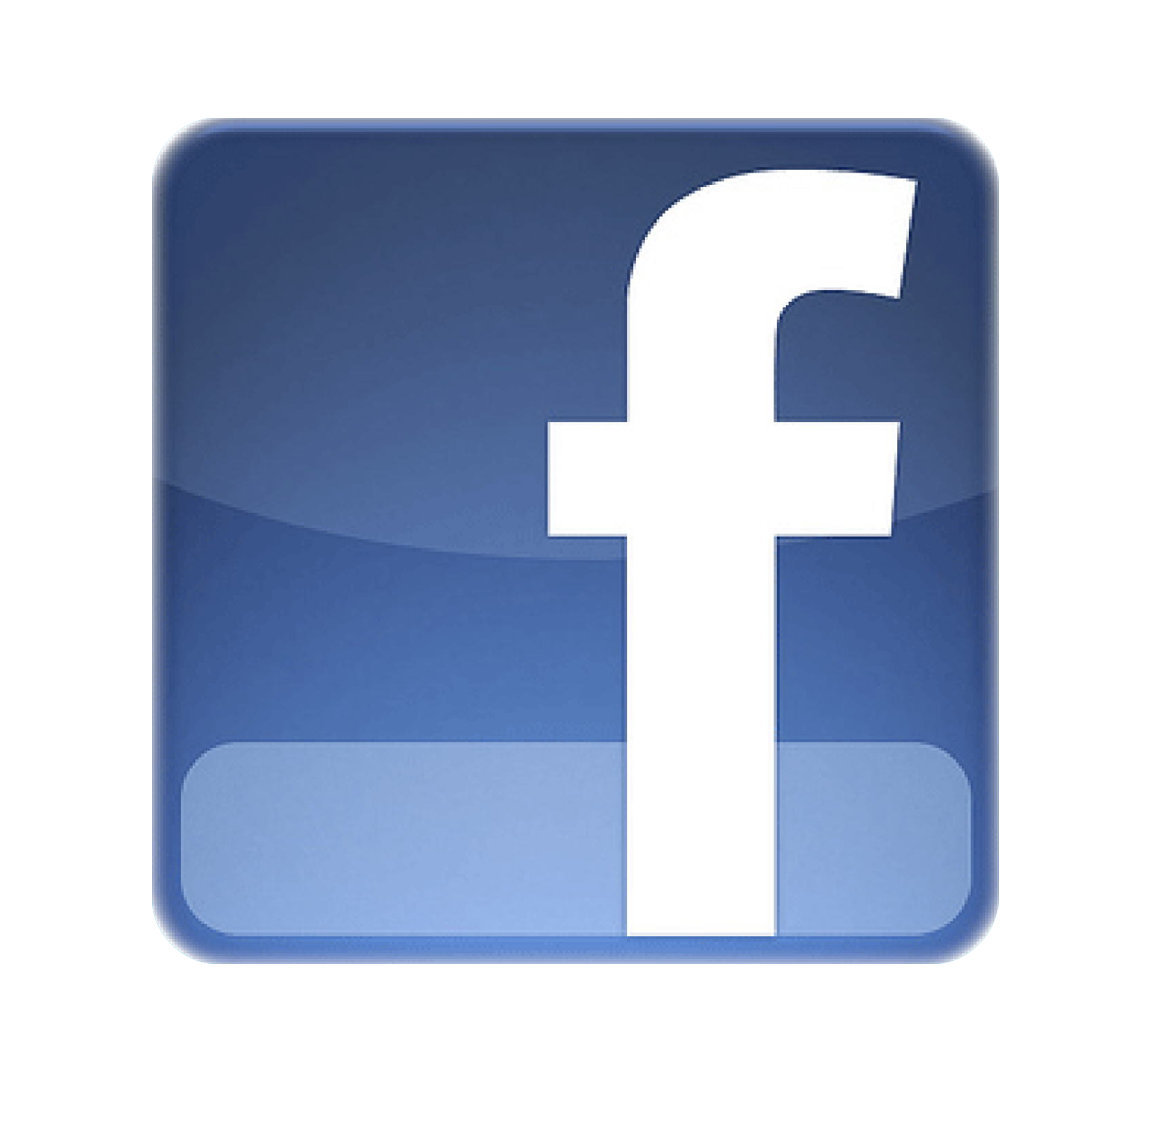 Facebook Icon Great Logo Design For Your Website #32254